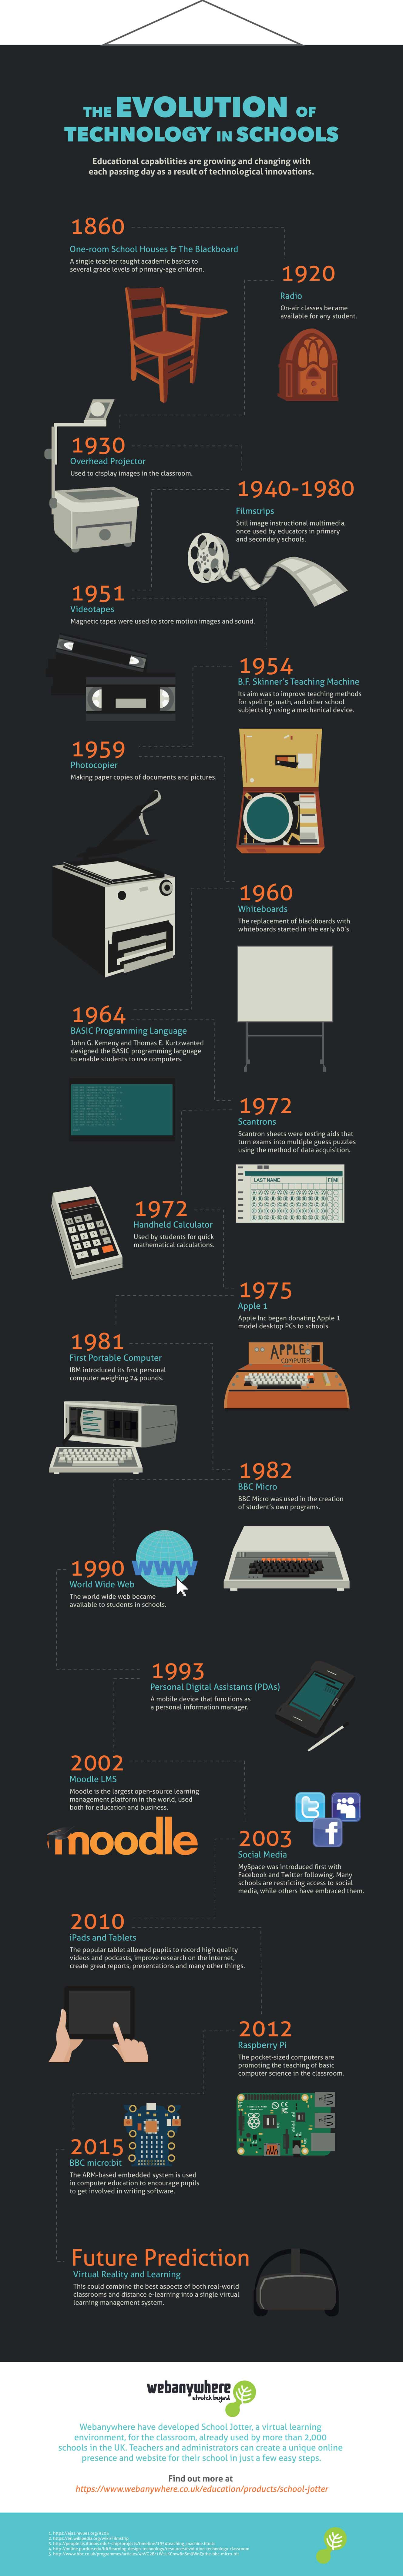 technology_in_the_classroom_22_influential_changes_over_the_last_150_years_infographic.jpg